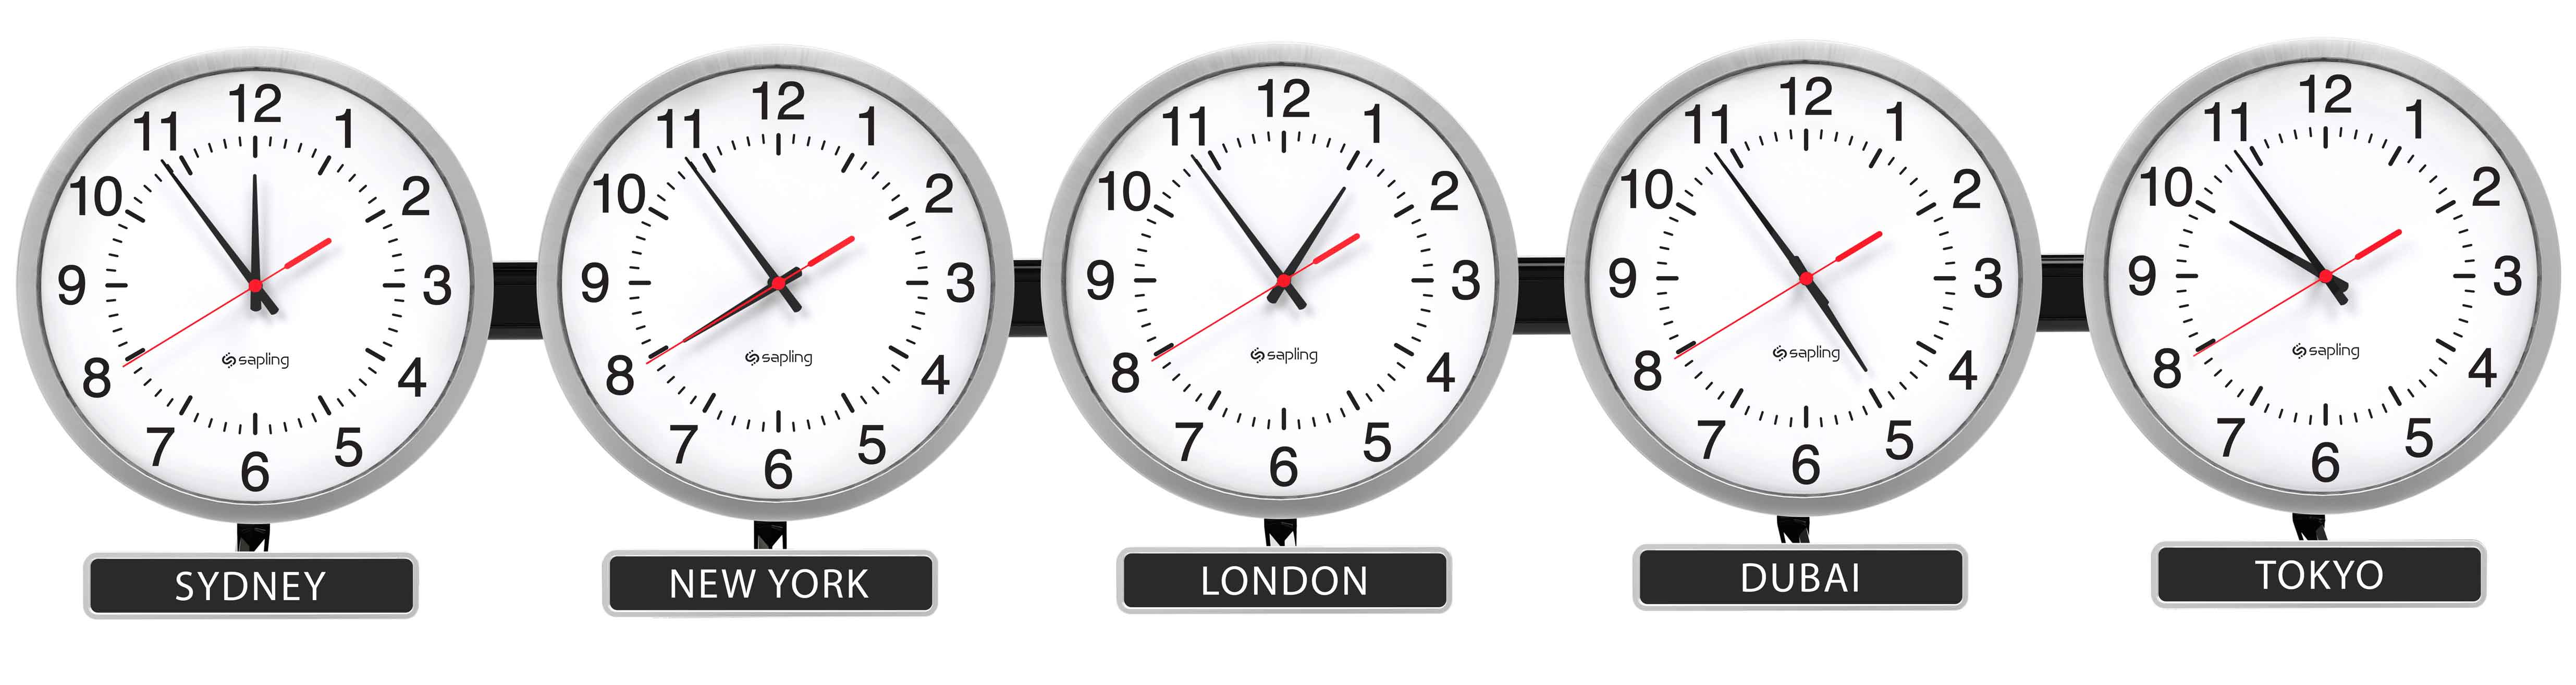 Sapling Round Analog Time Zone Clocks